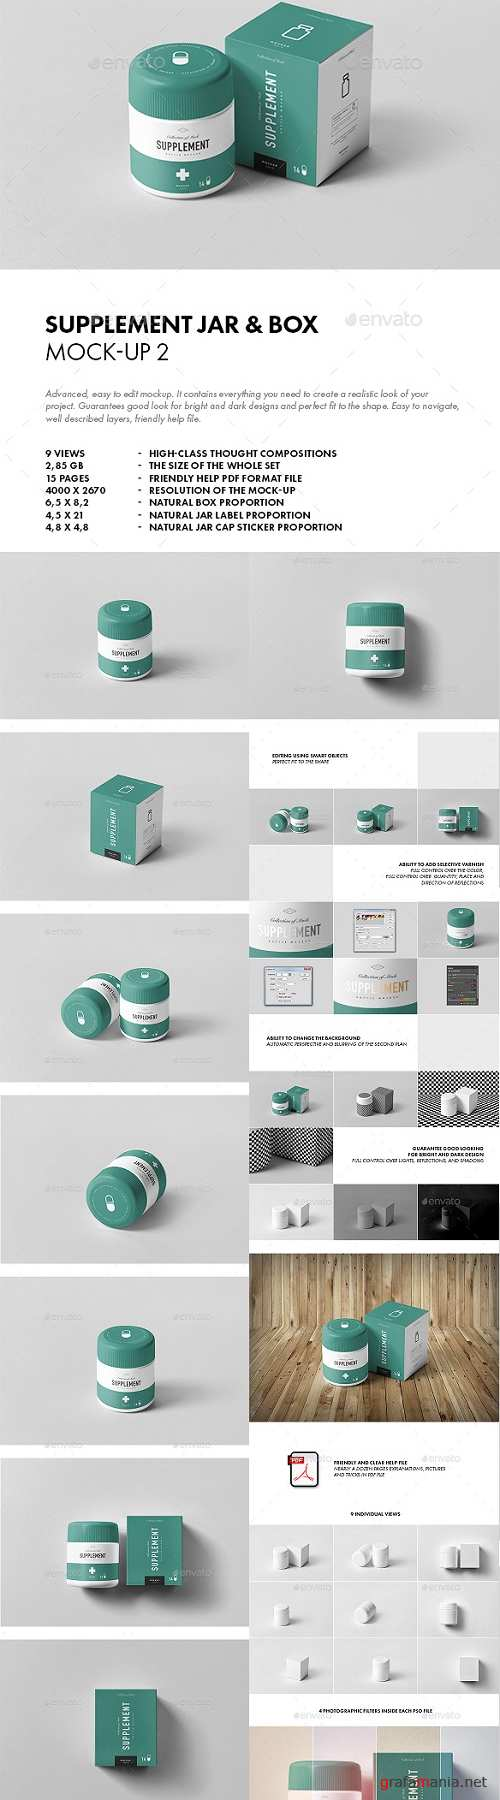 Supplement Jar & Box Mock-up 2 20742639